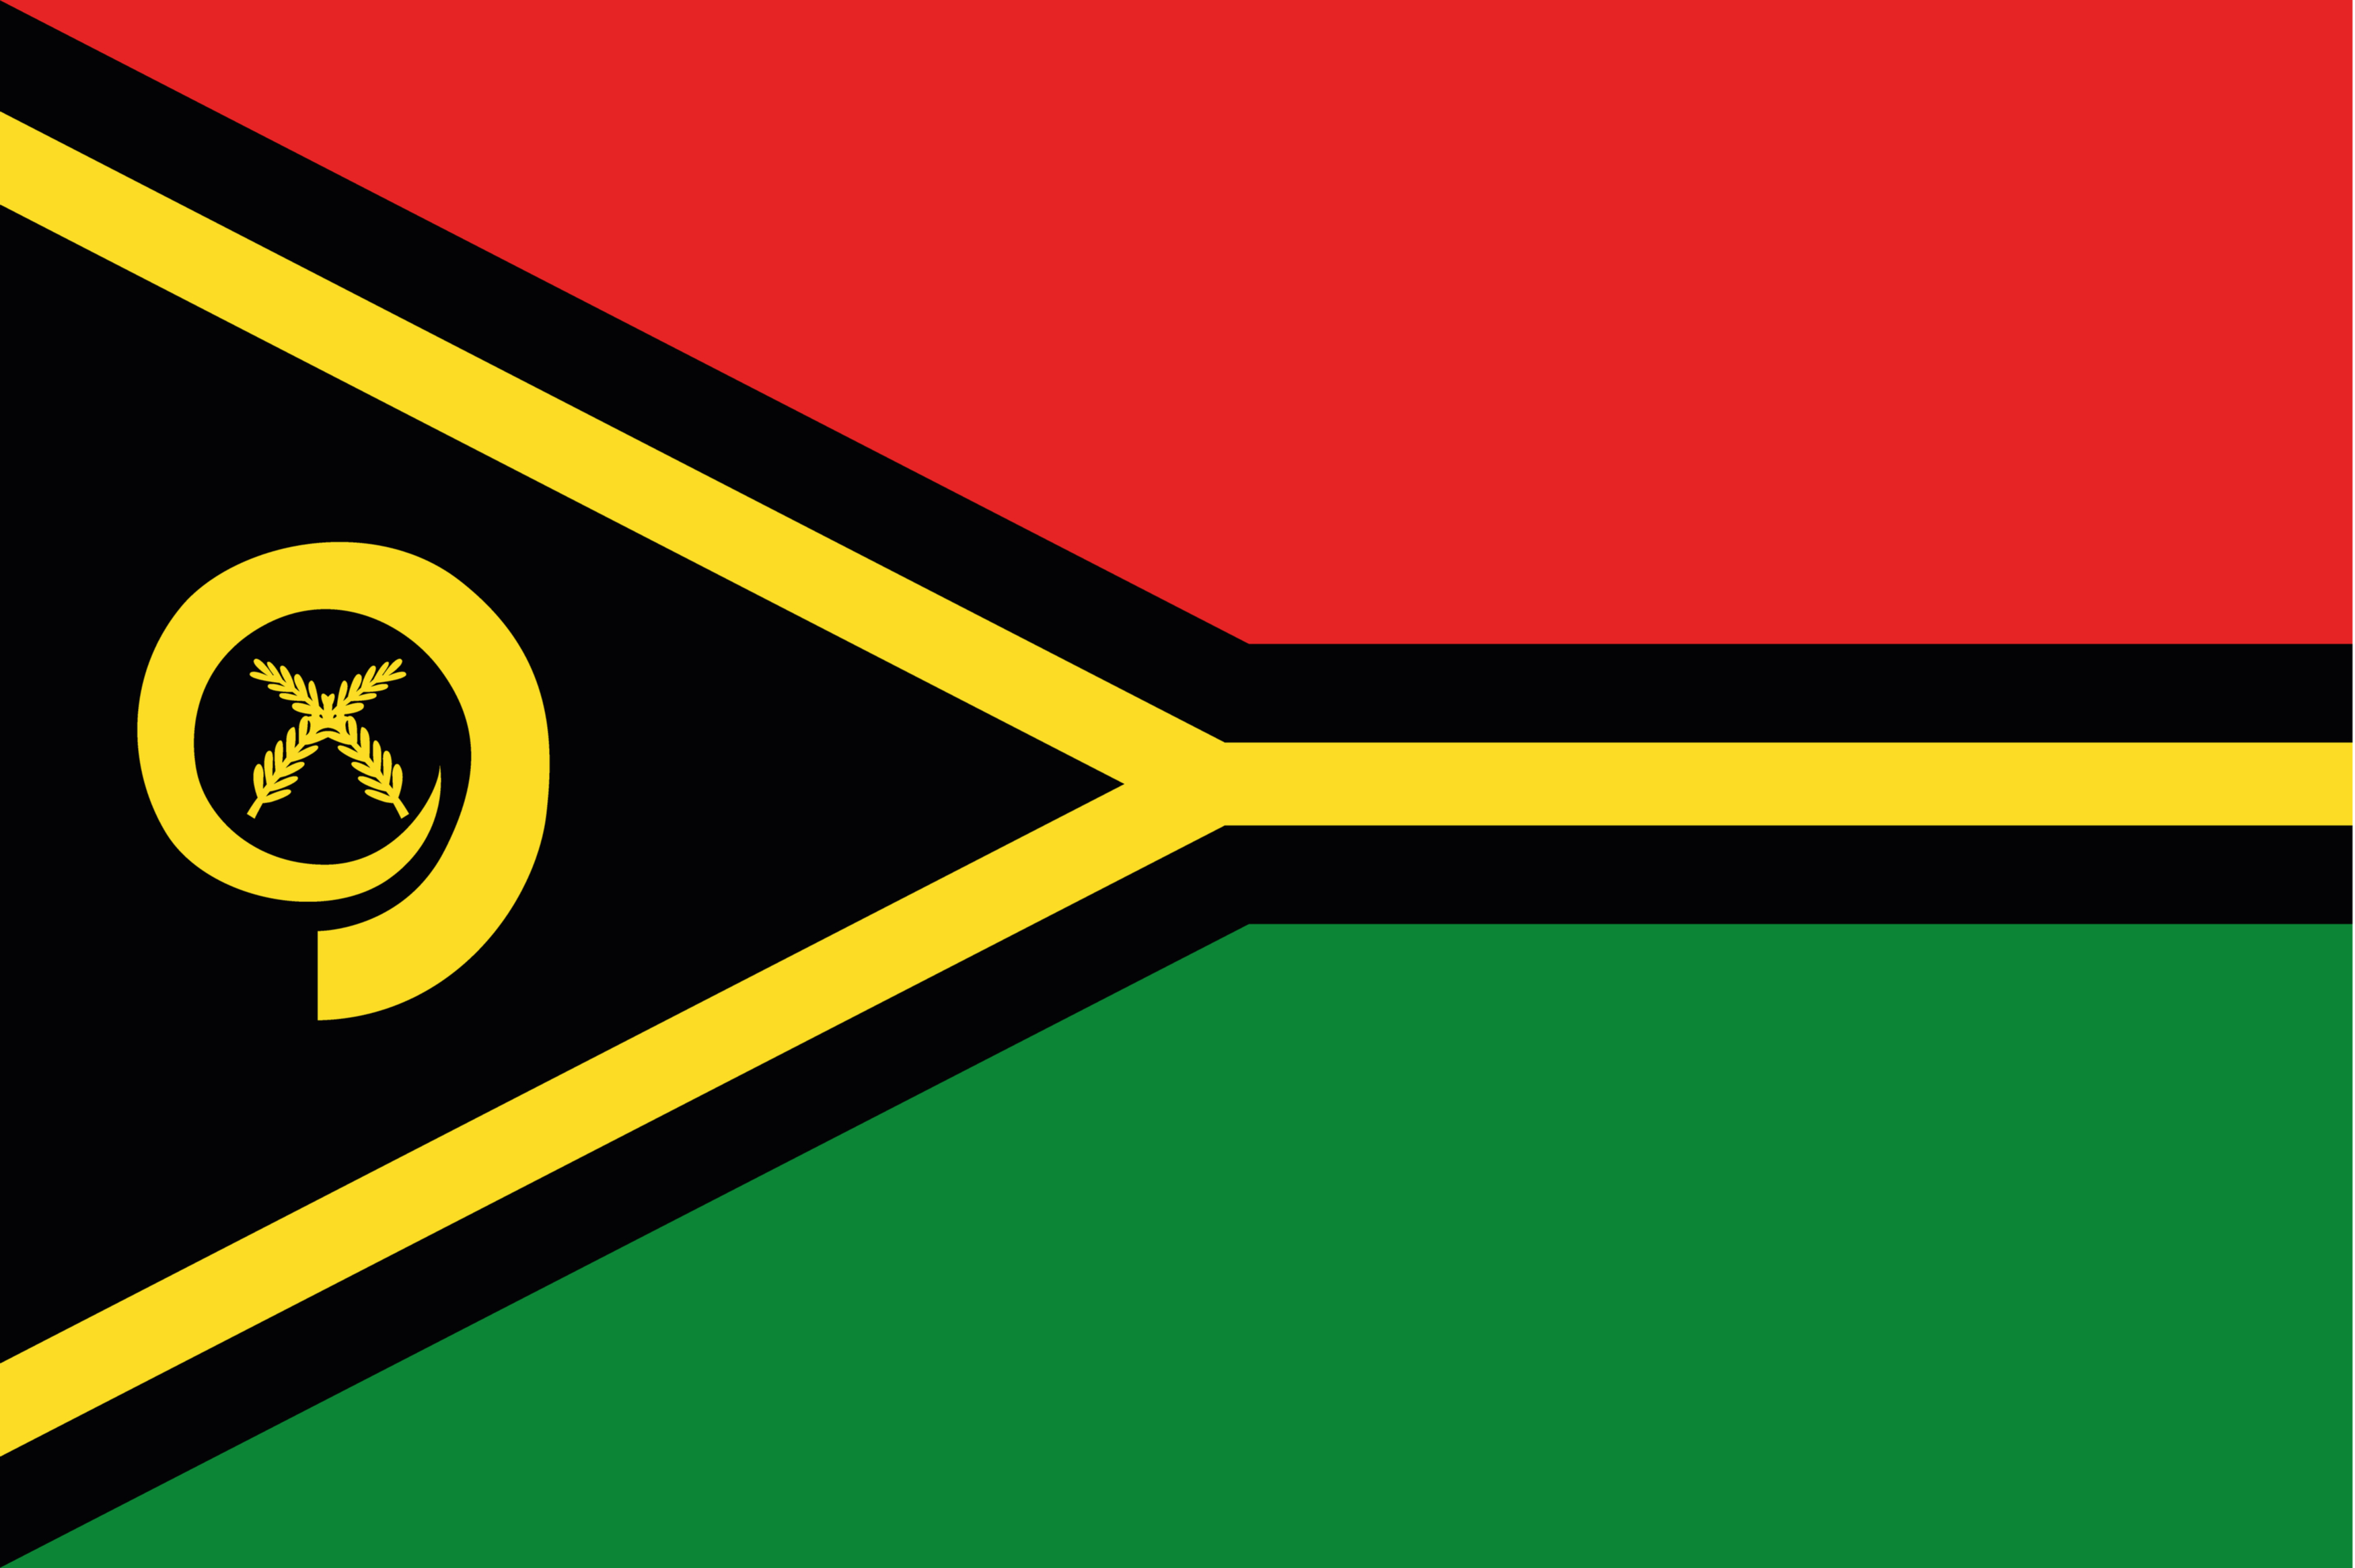 The flag of Vanuatu uses the colors of the Vanuatu independence flag.